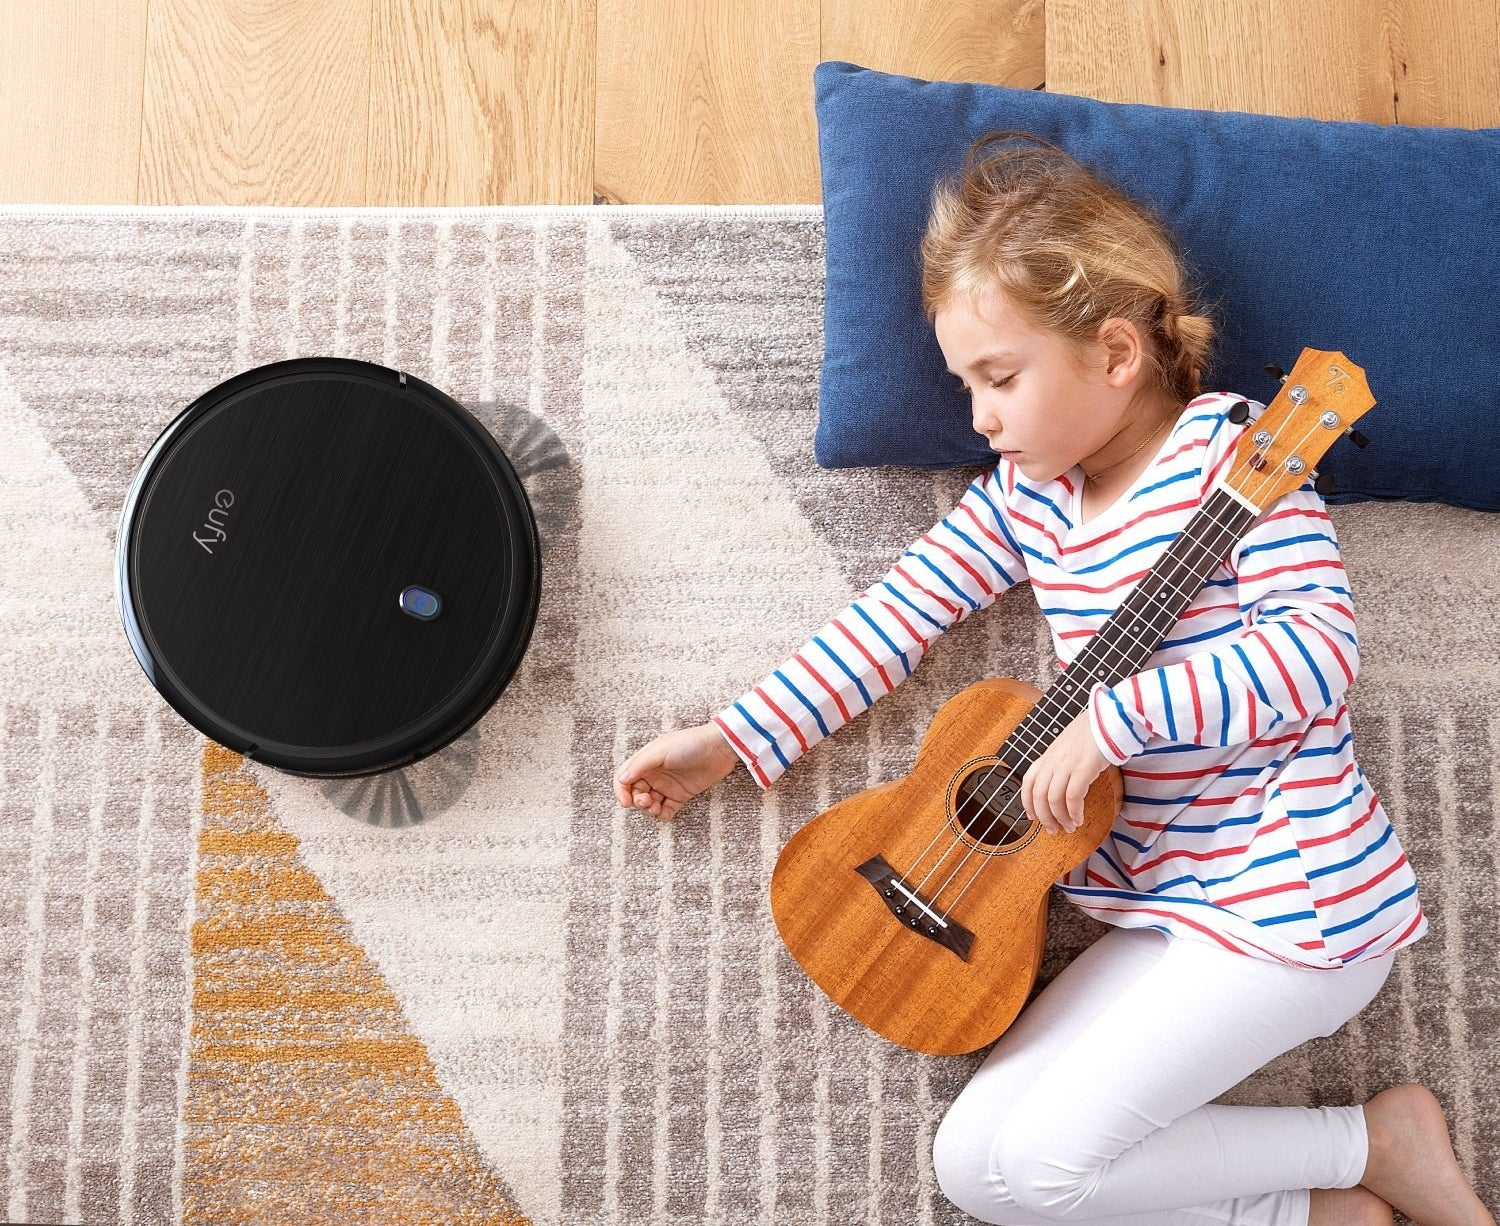 Young girl lying on ground with guitar next to robot vacuum